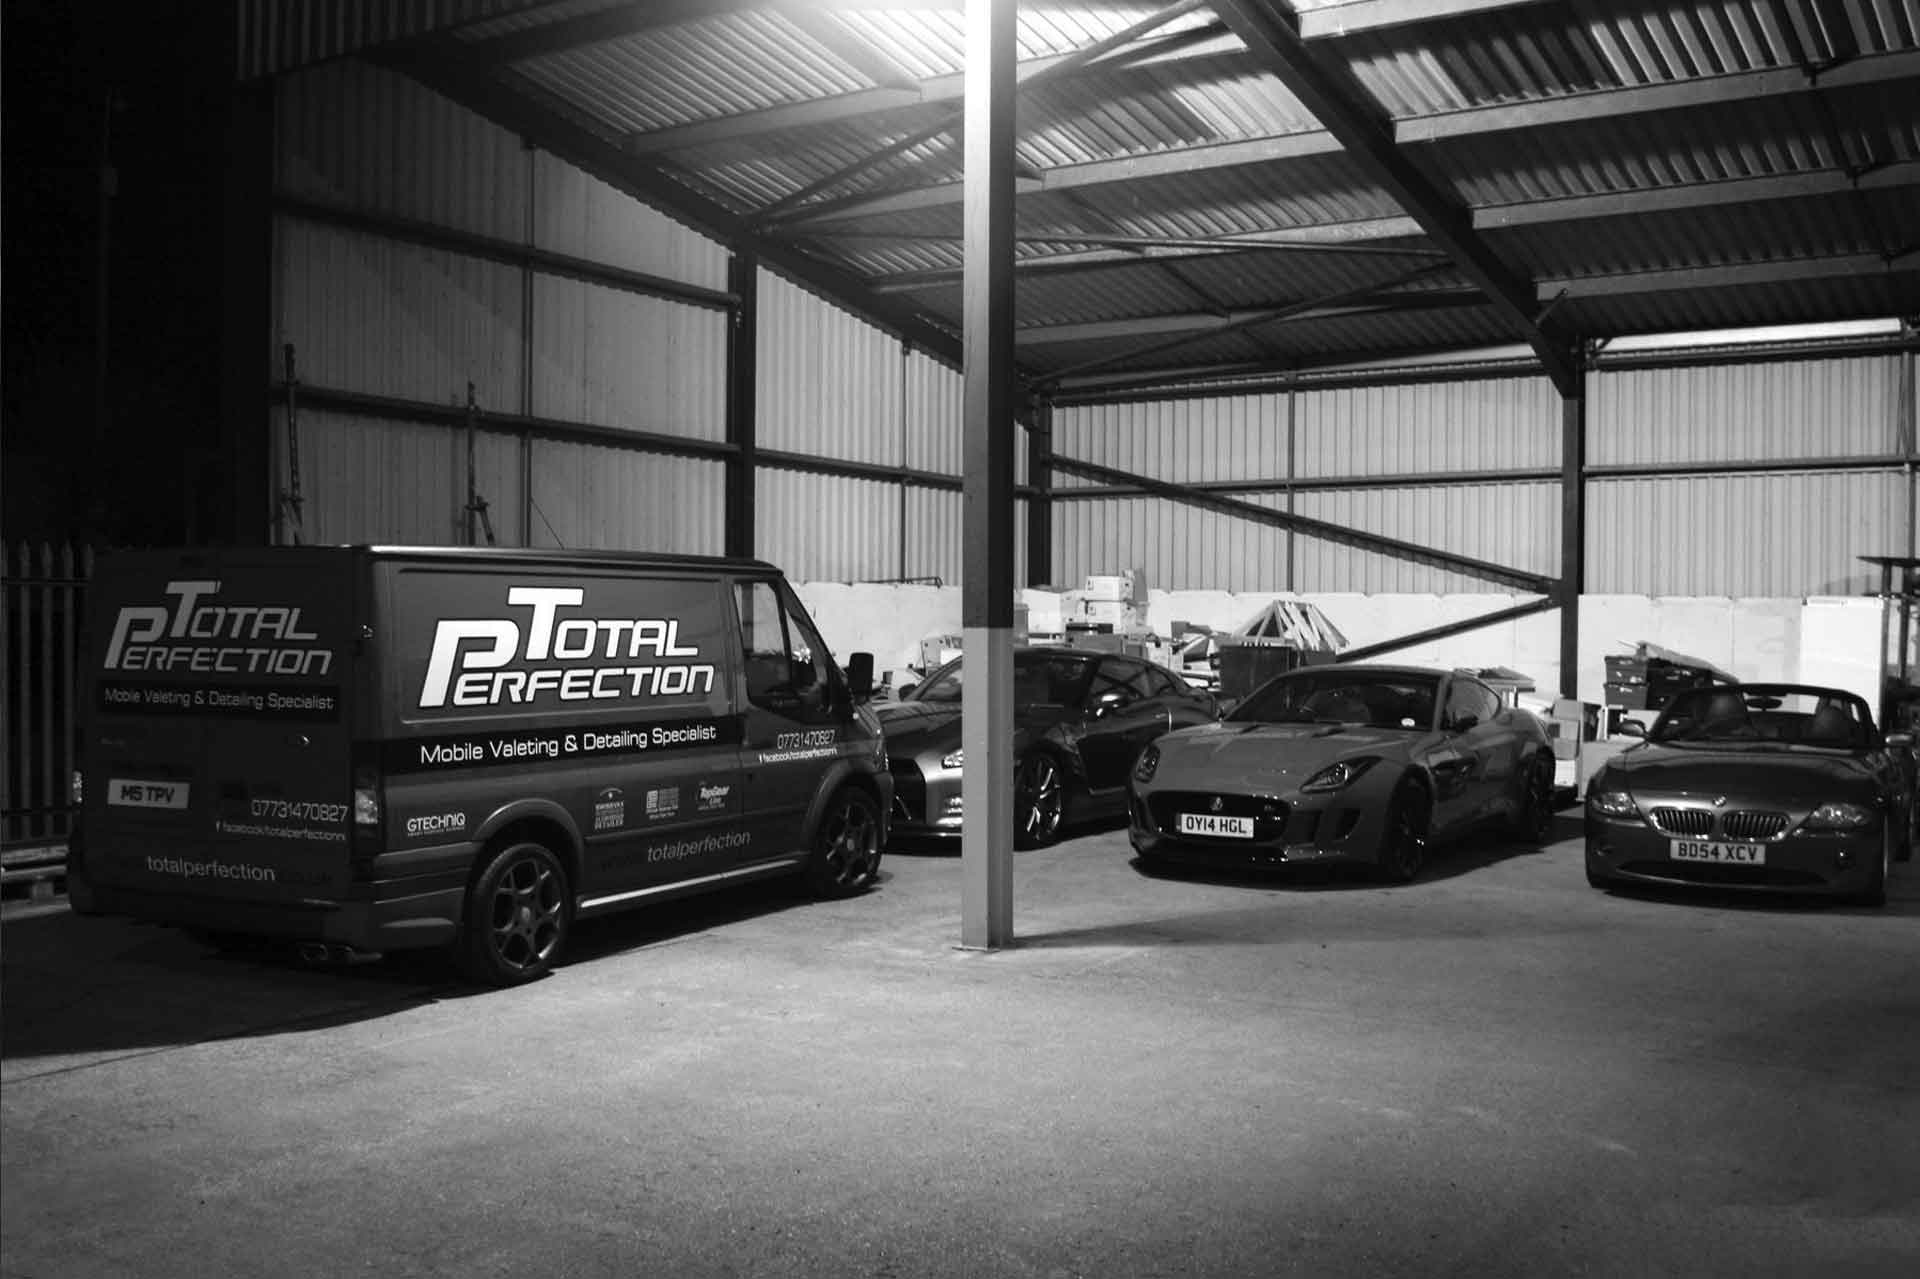 We can store, collect & deliver your vehicle Total Perfection